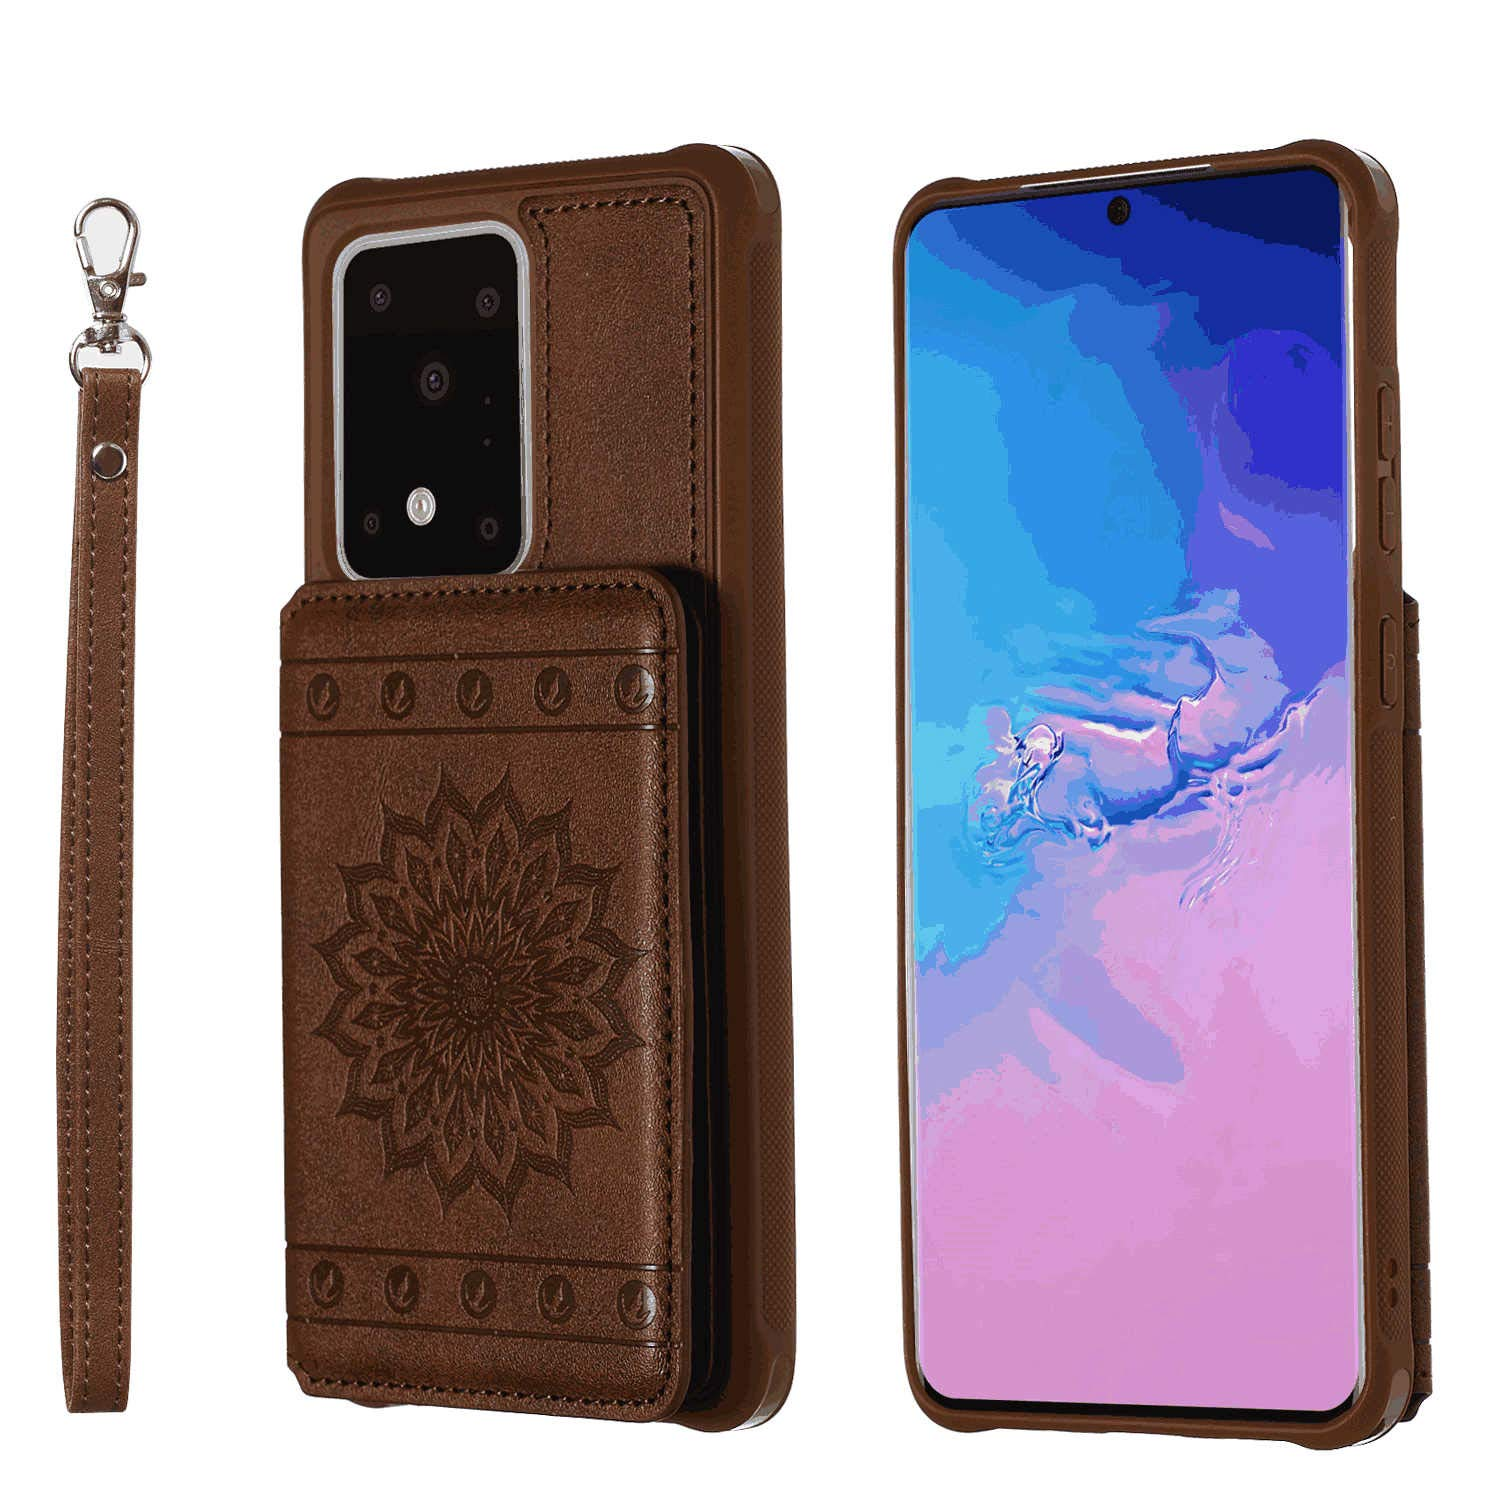 Elephant Wallet Cover for Samsung Galaxy S10e Leather Flip Case Fit for Samsung Galaxy S10e